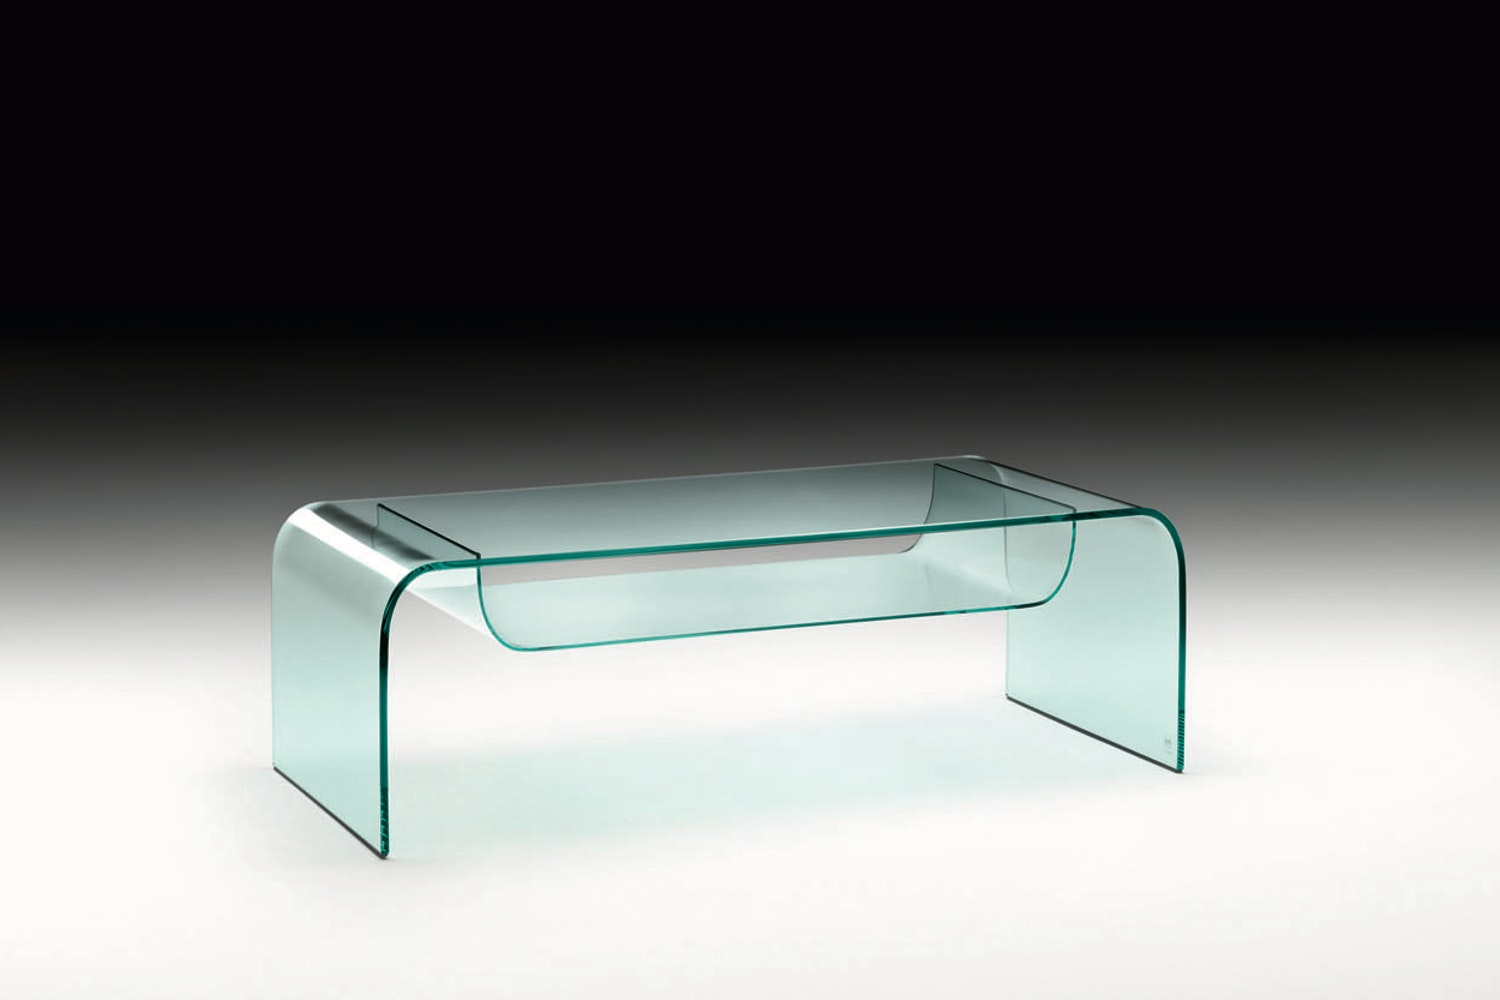 Giano Coffee Table by Enzo Mari for Fiam Italia